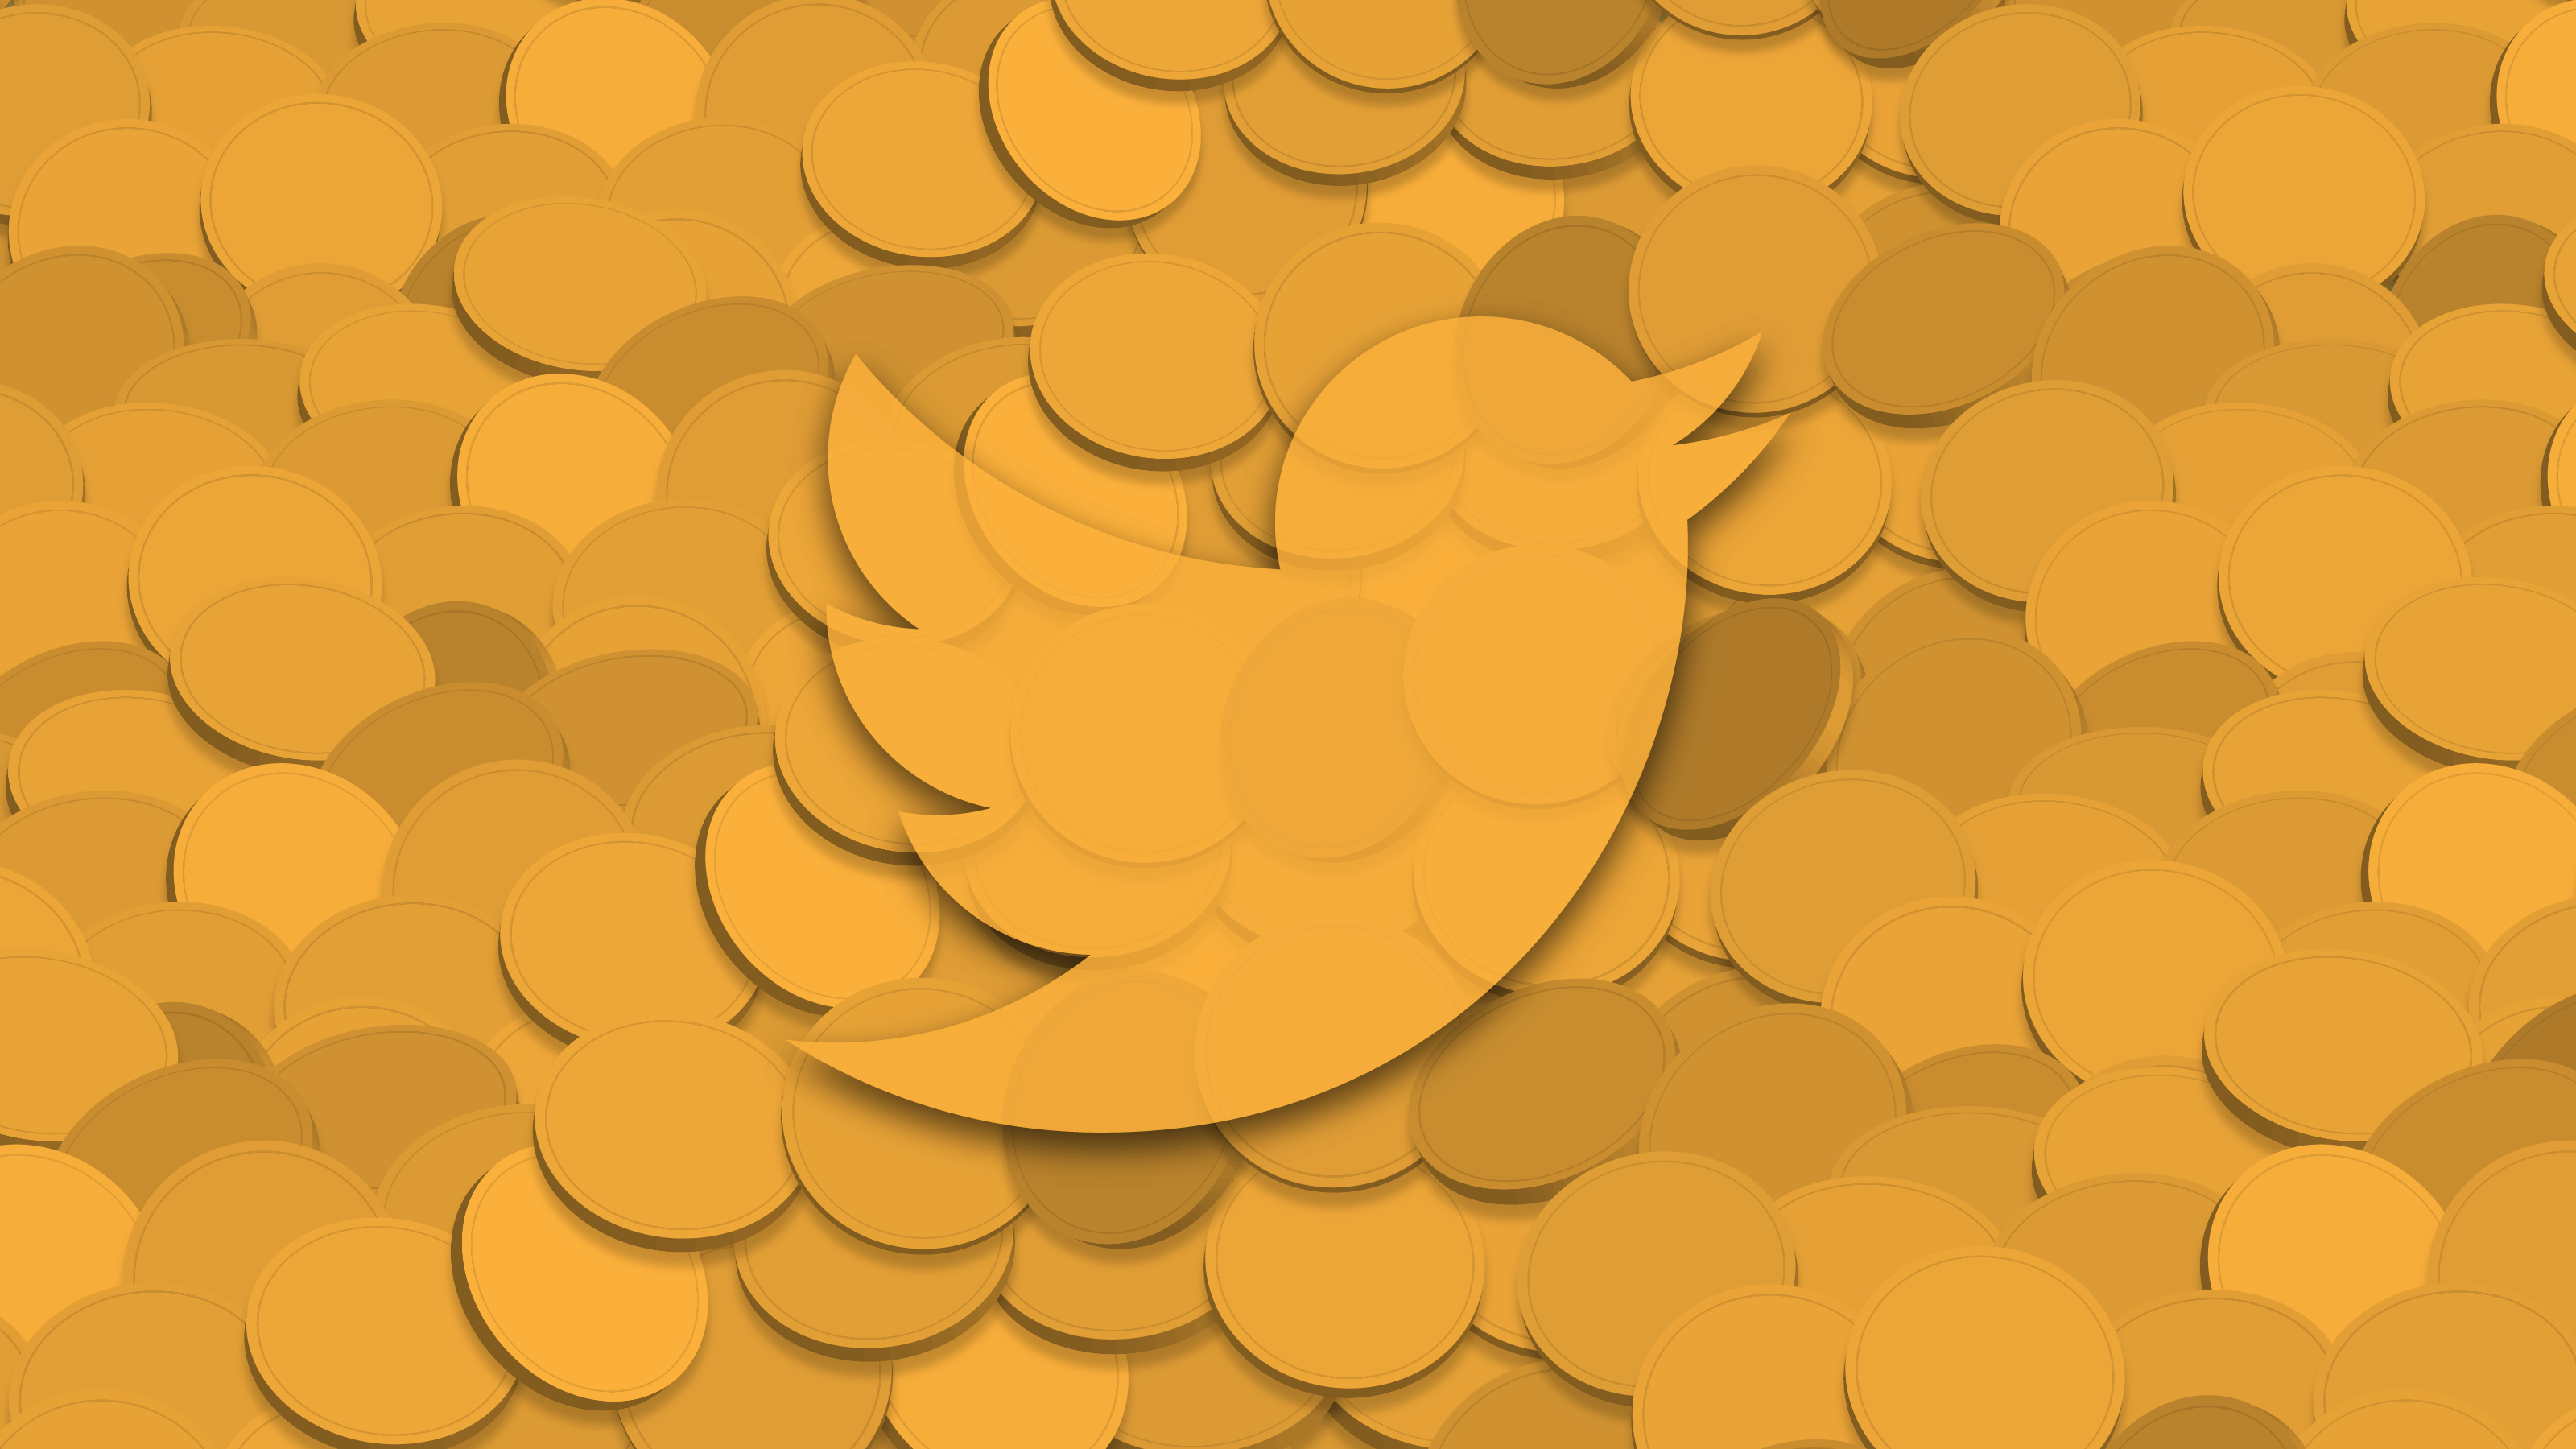 Twitter to ban cryptocurrency ads as online crackdown widens